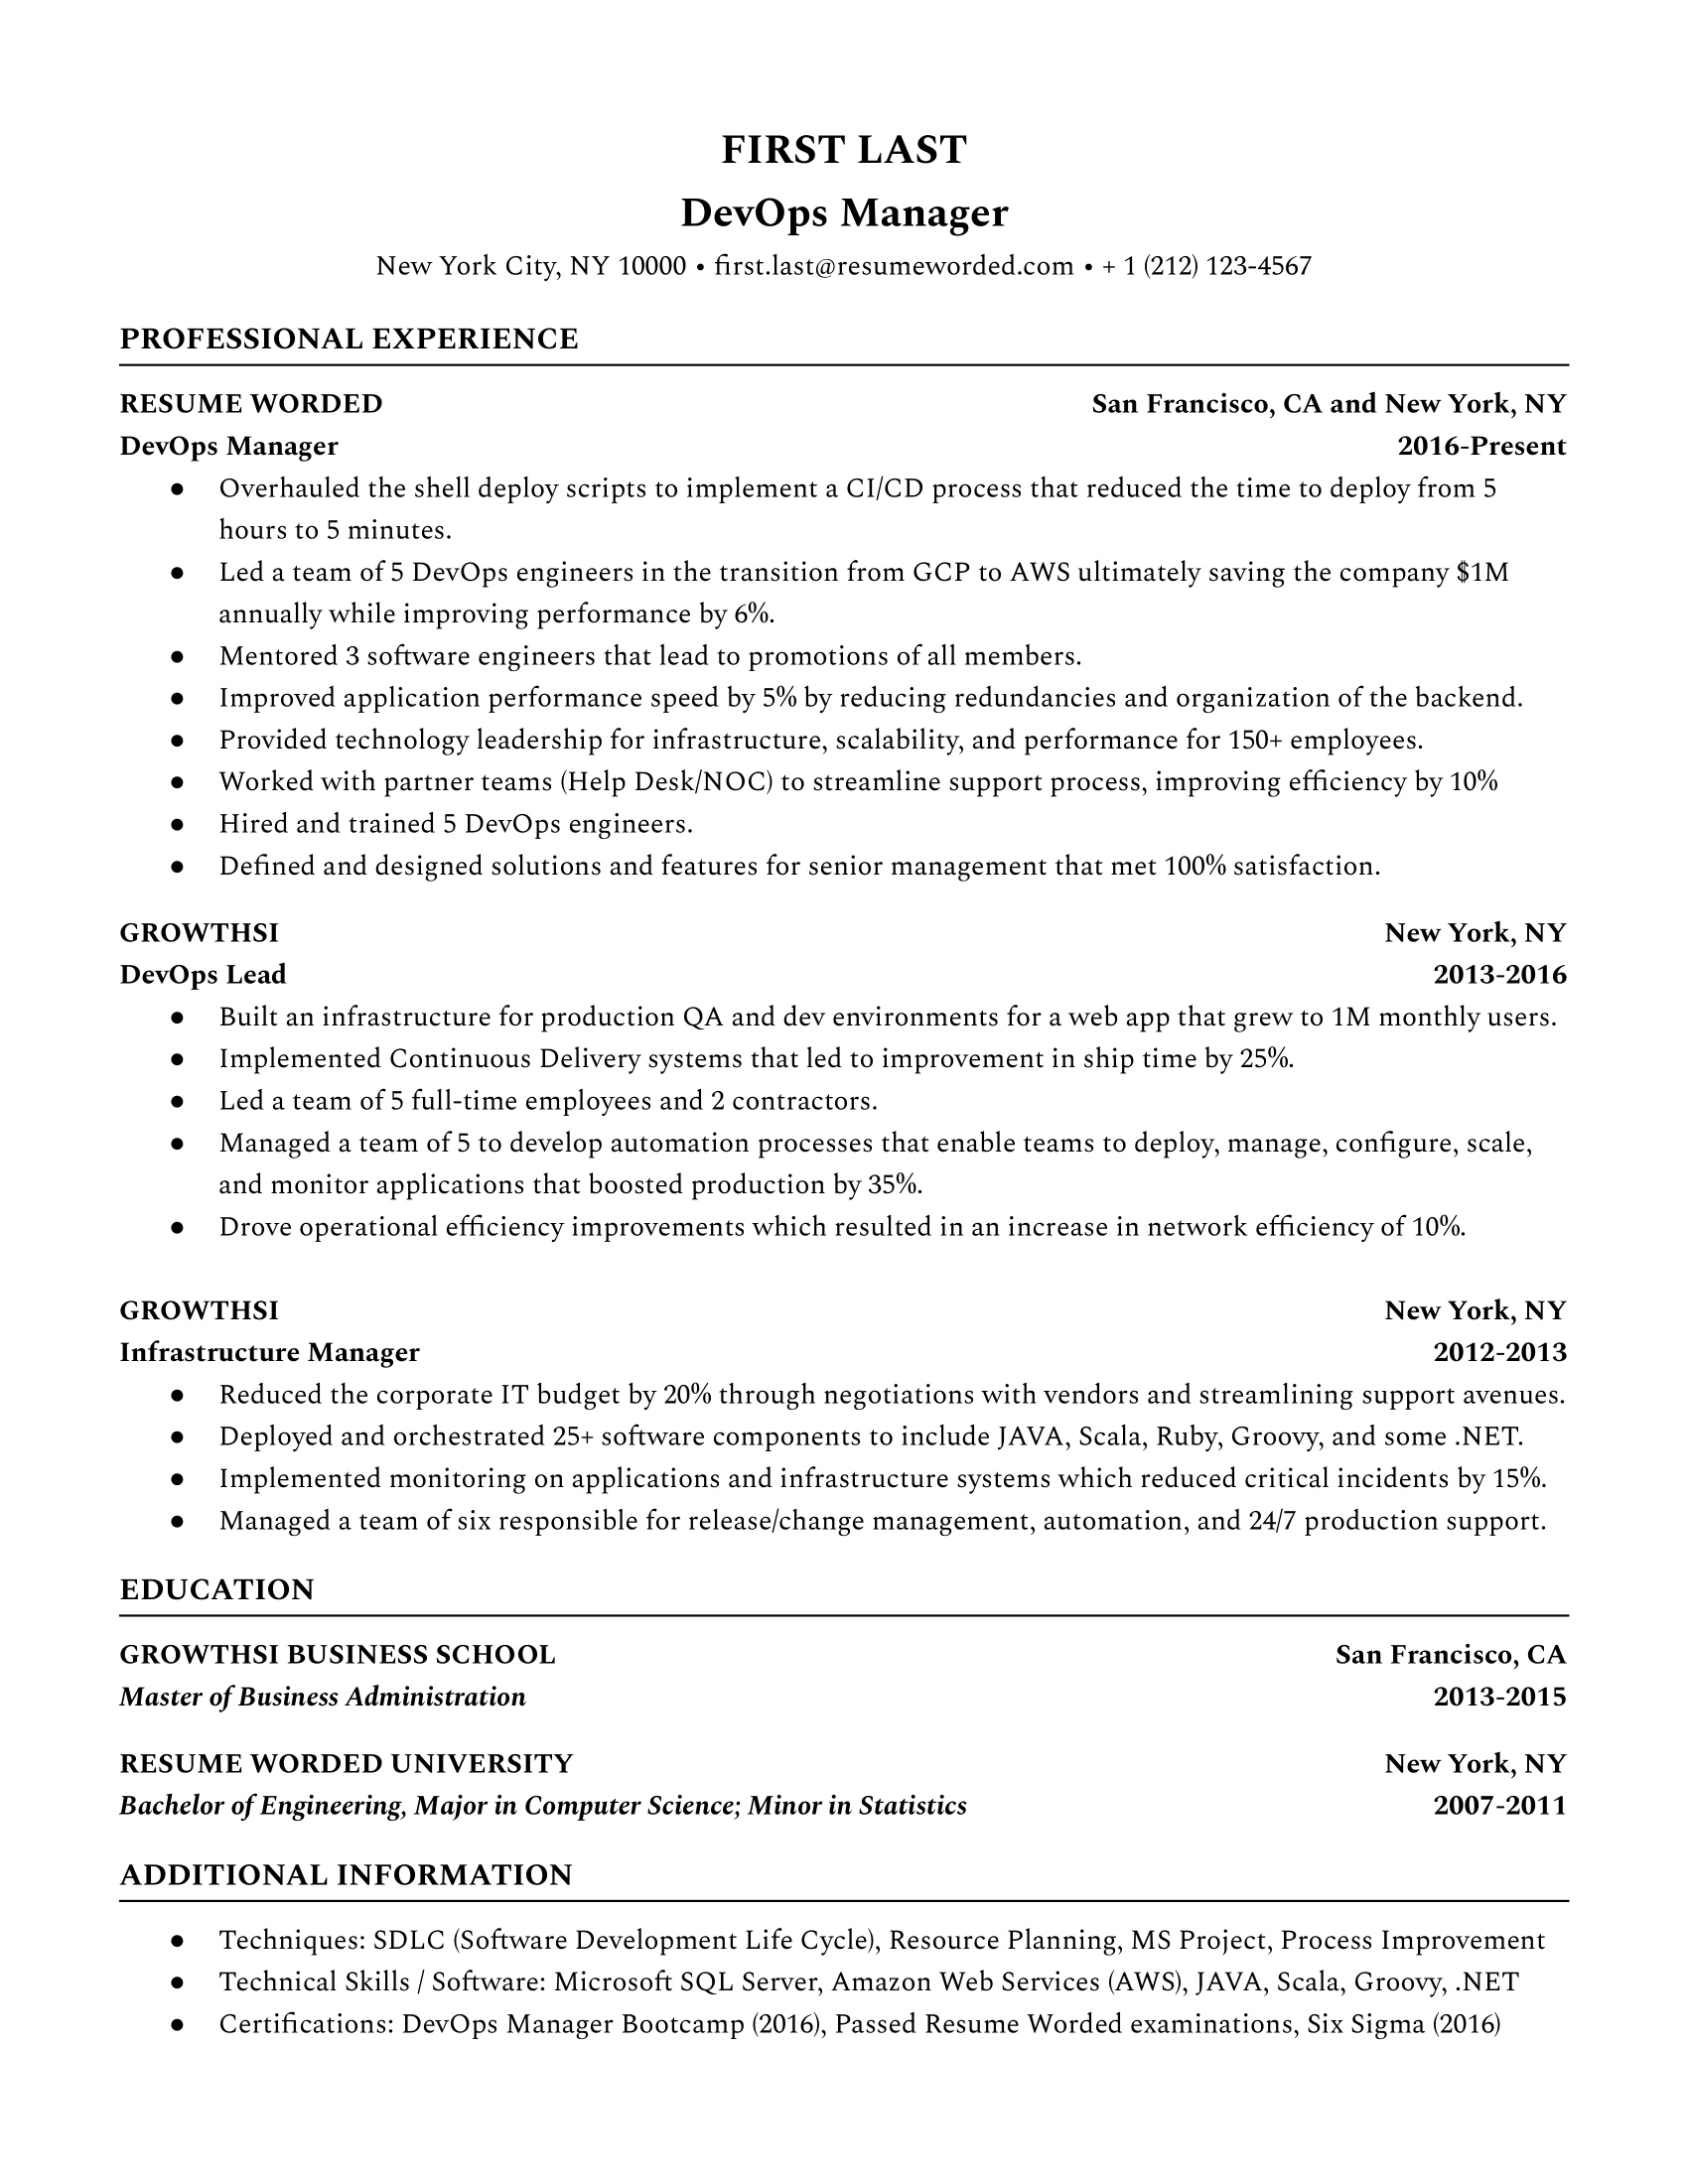 The hardest part is getting started. Devops Manager Resume Example For 2021 Resume Worded Resume Worded